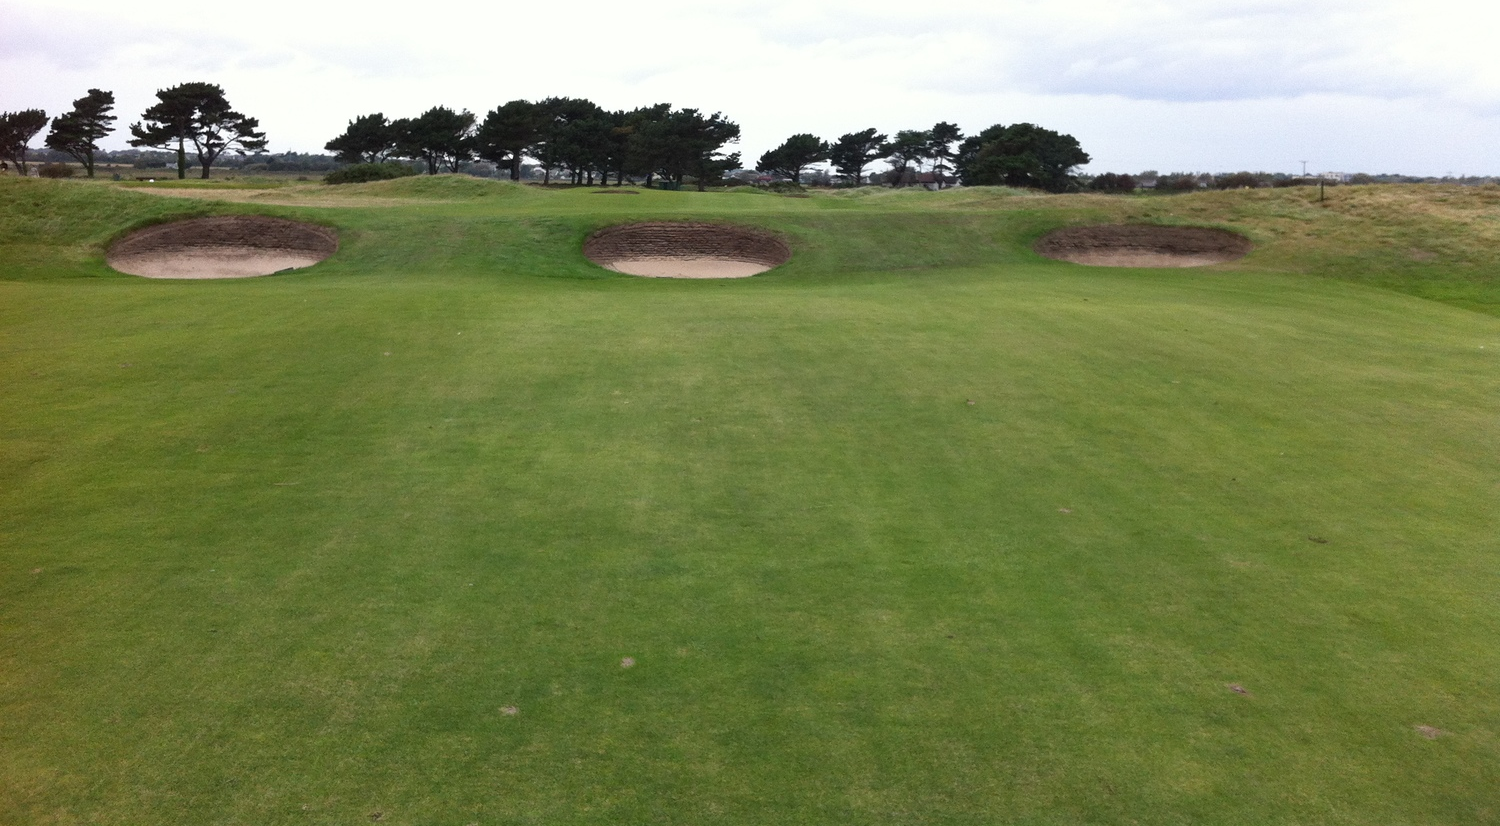 These bunkers are just daring you to try and carry them.